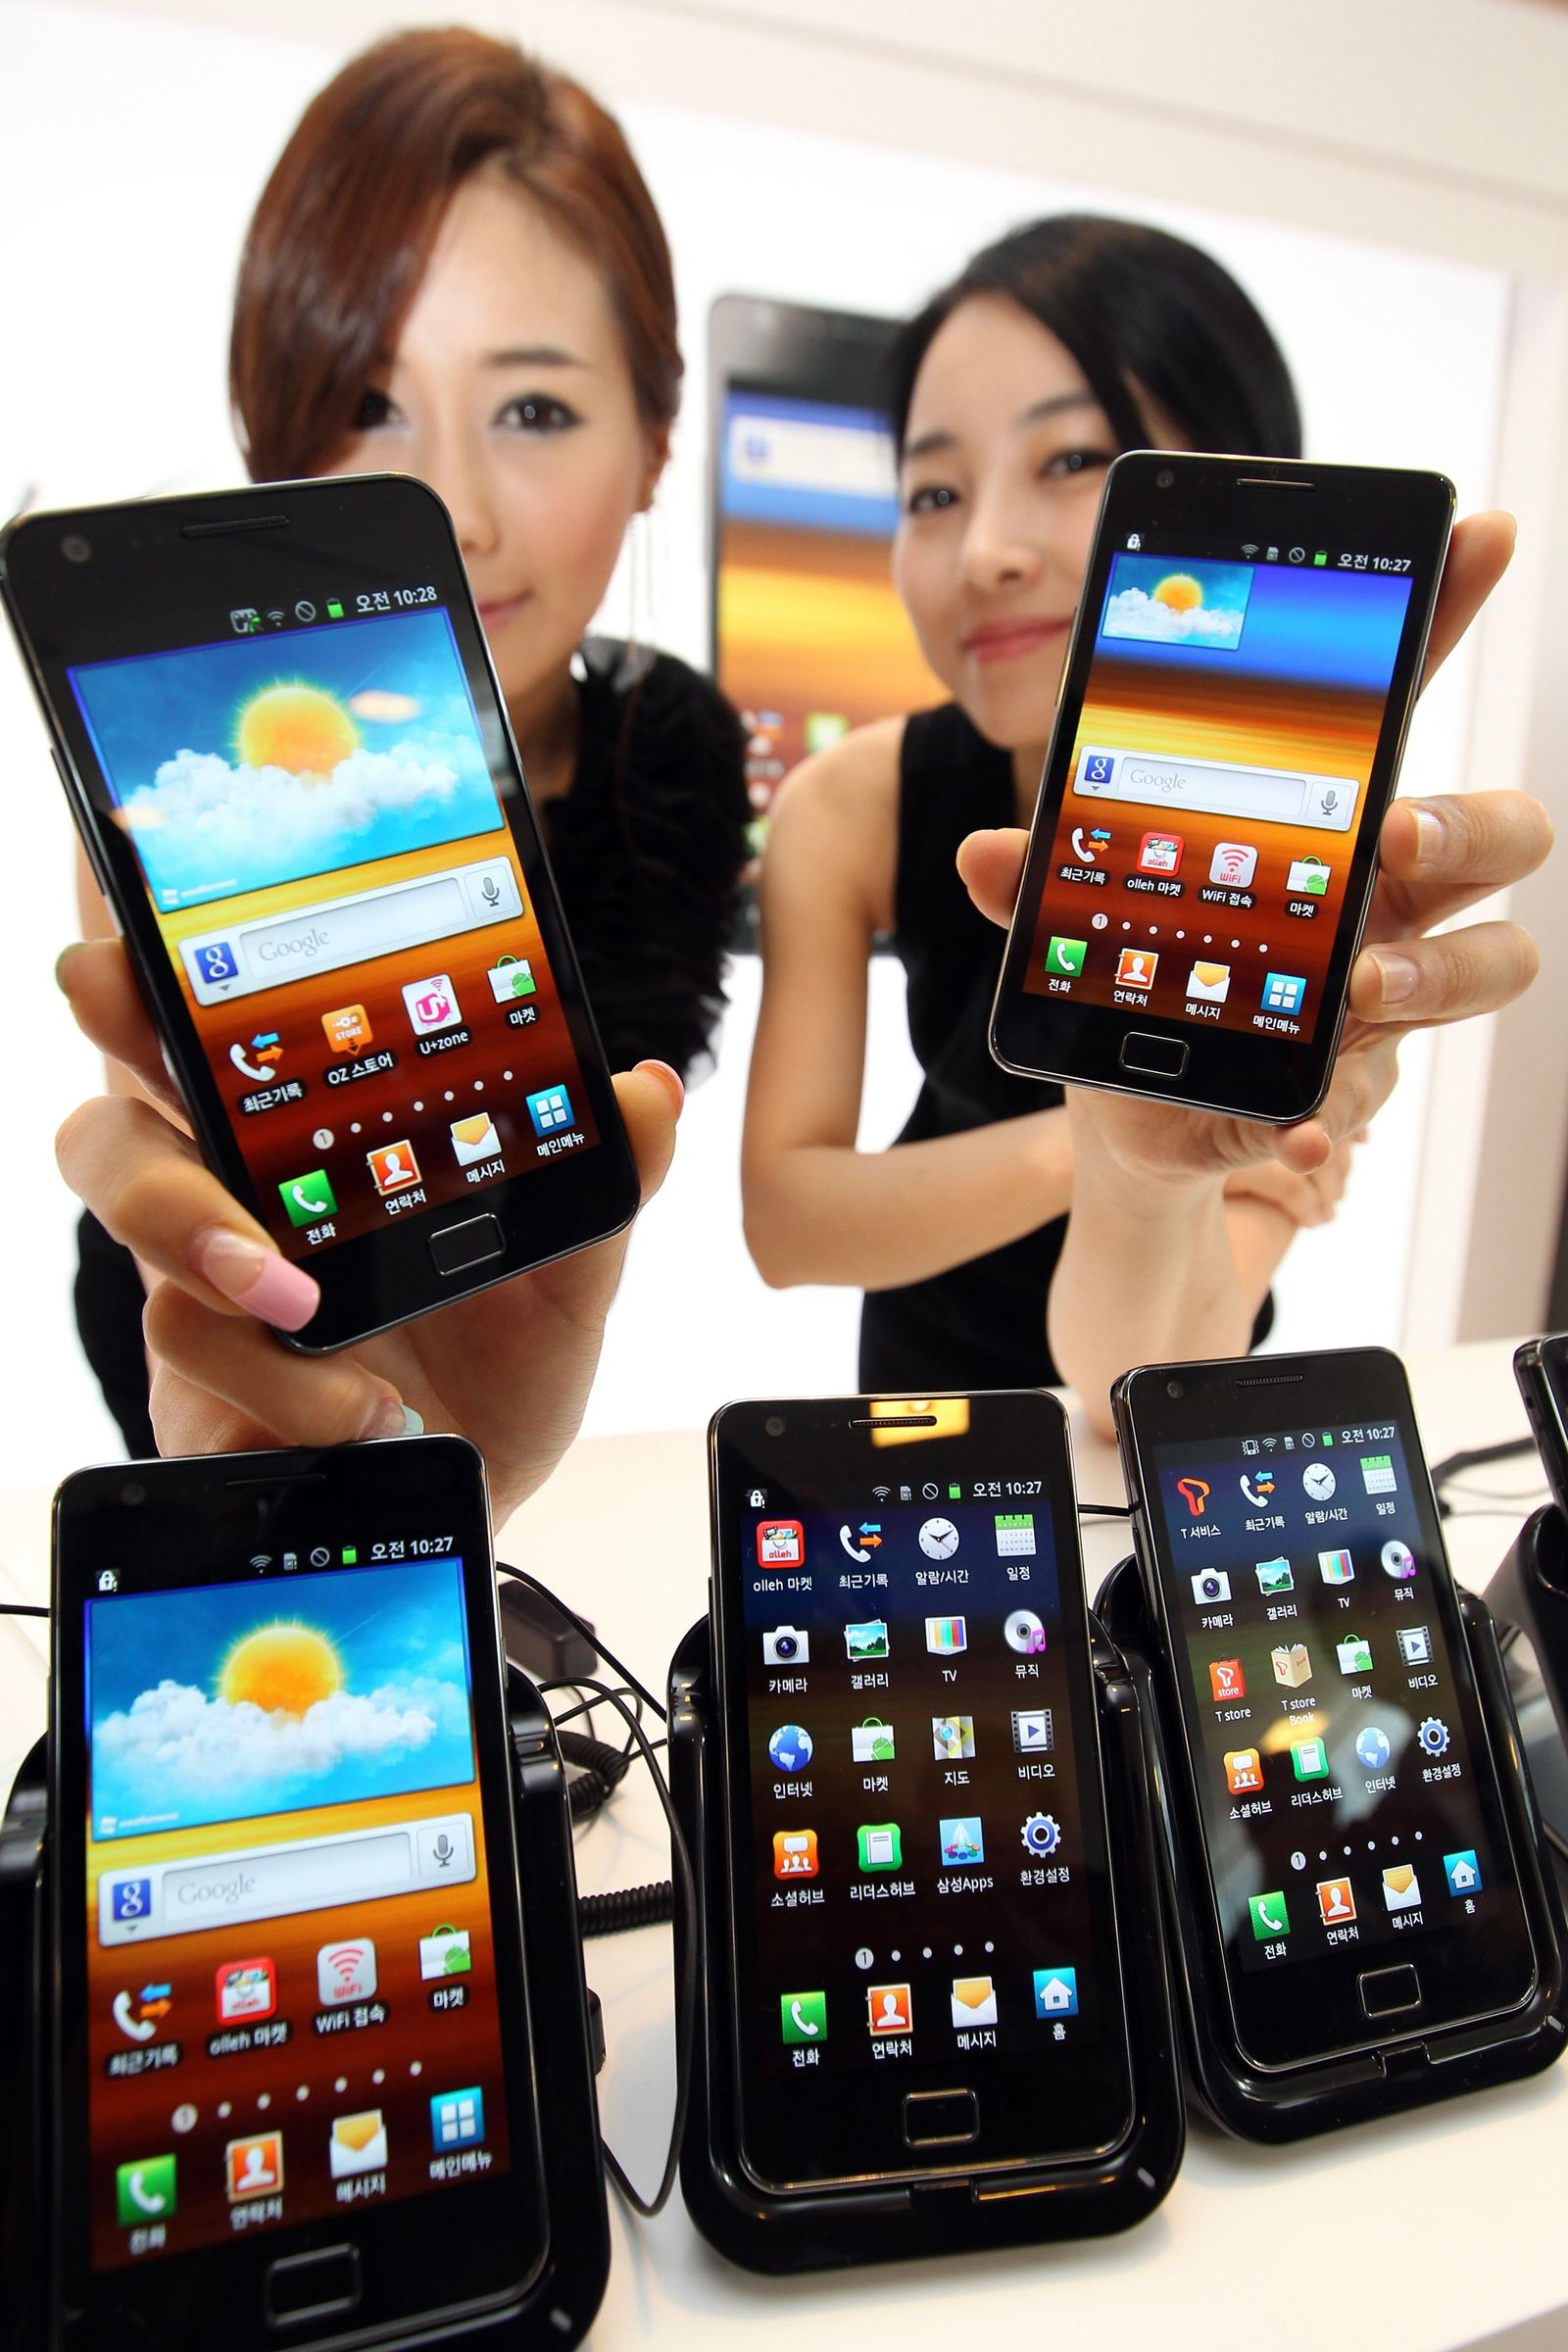 Samsung Galaxy / Models